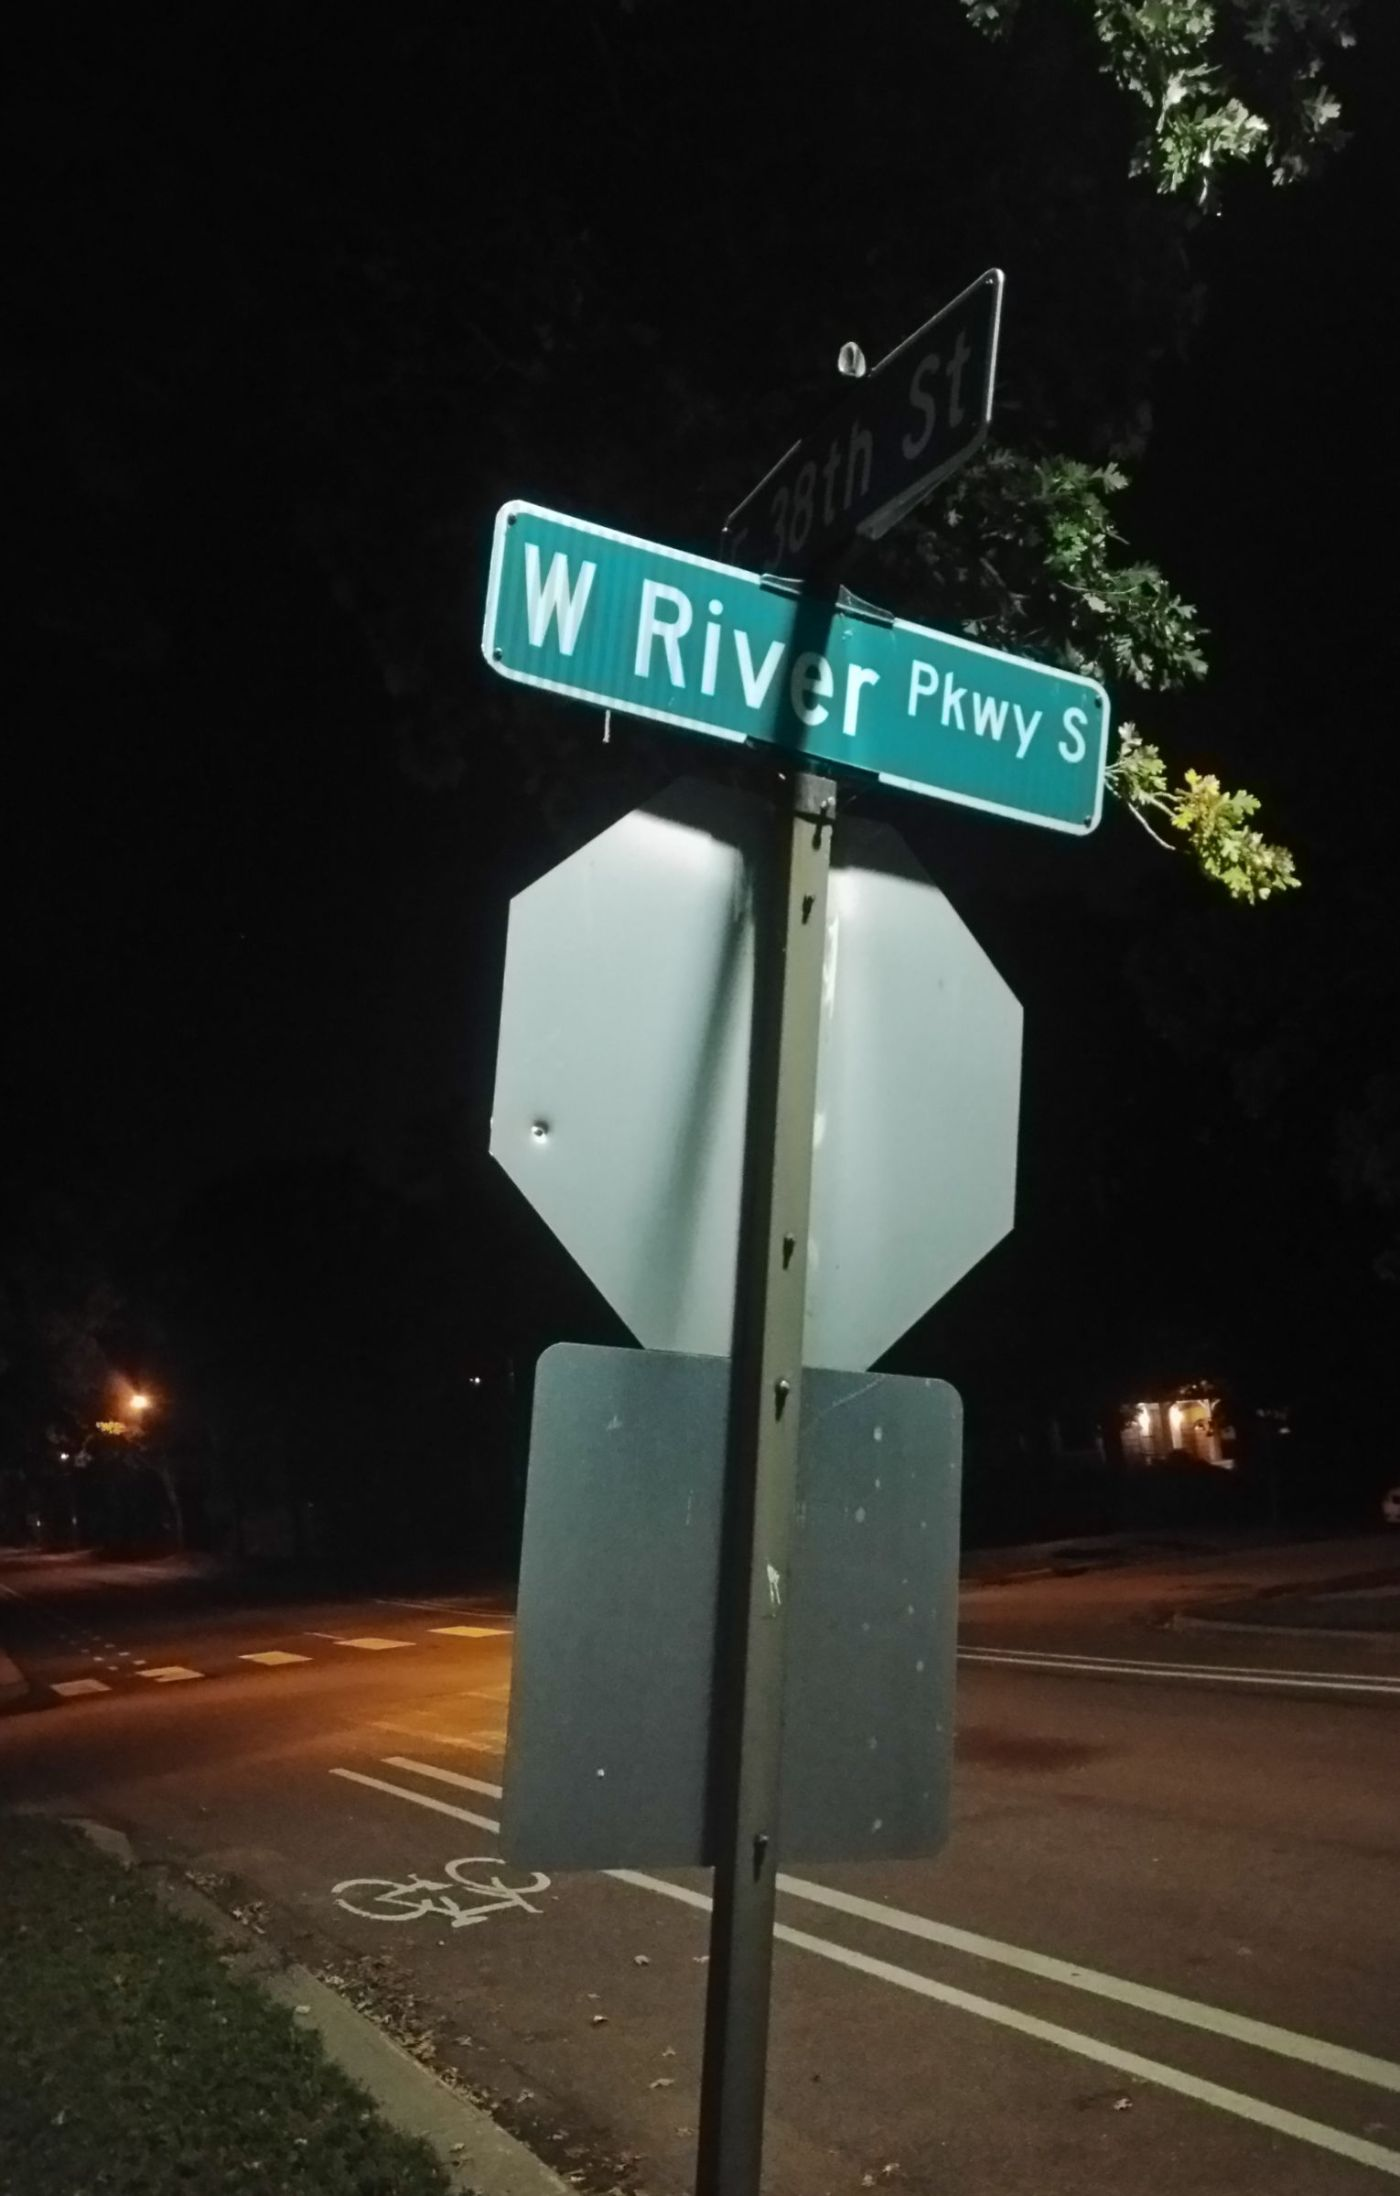 W River Pkwy S street sign